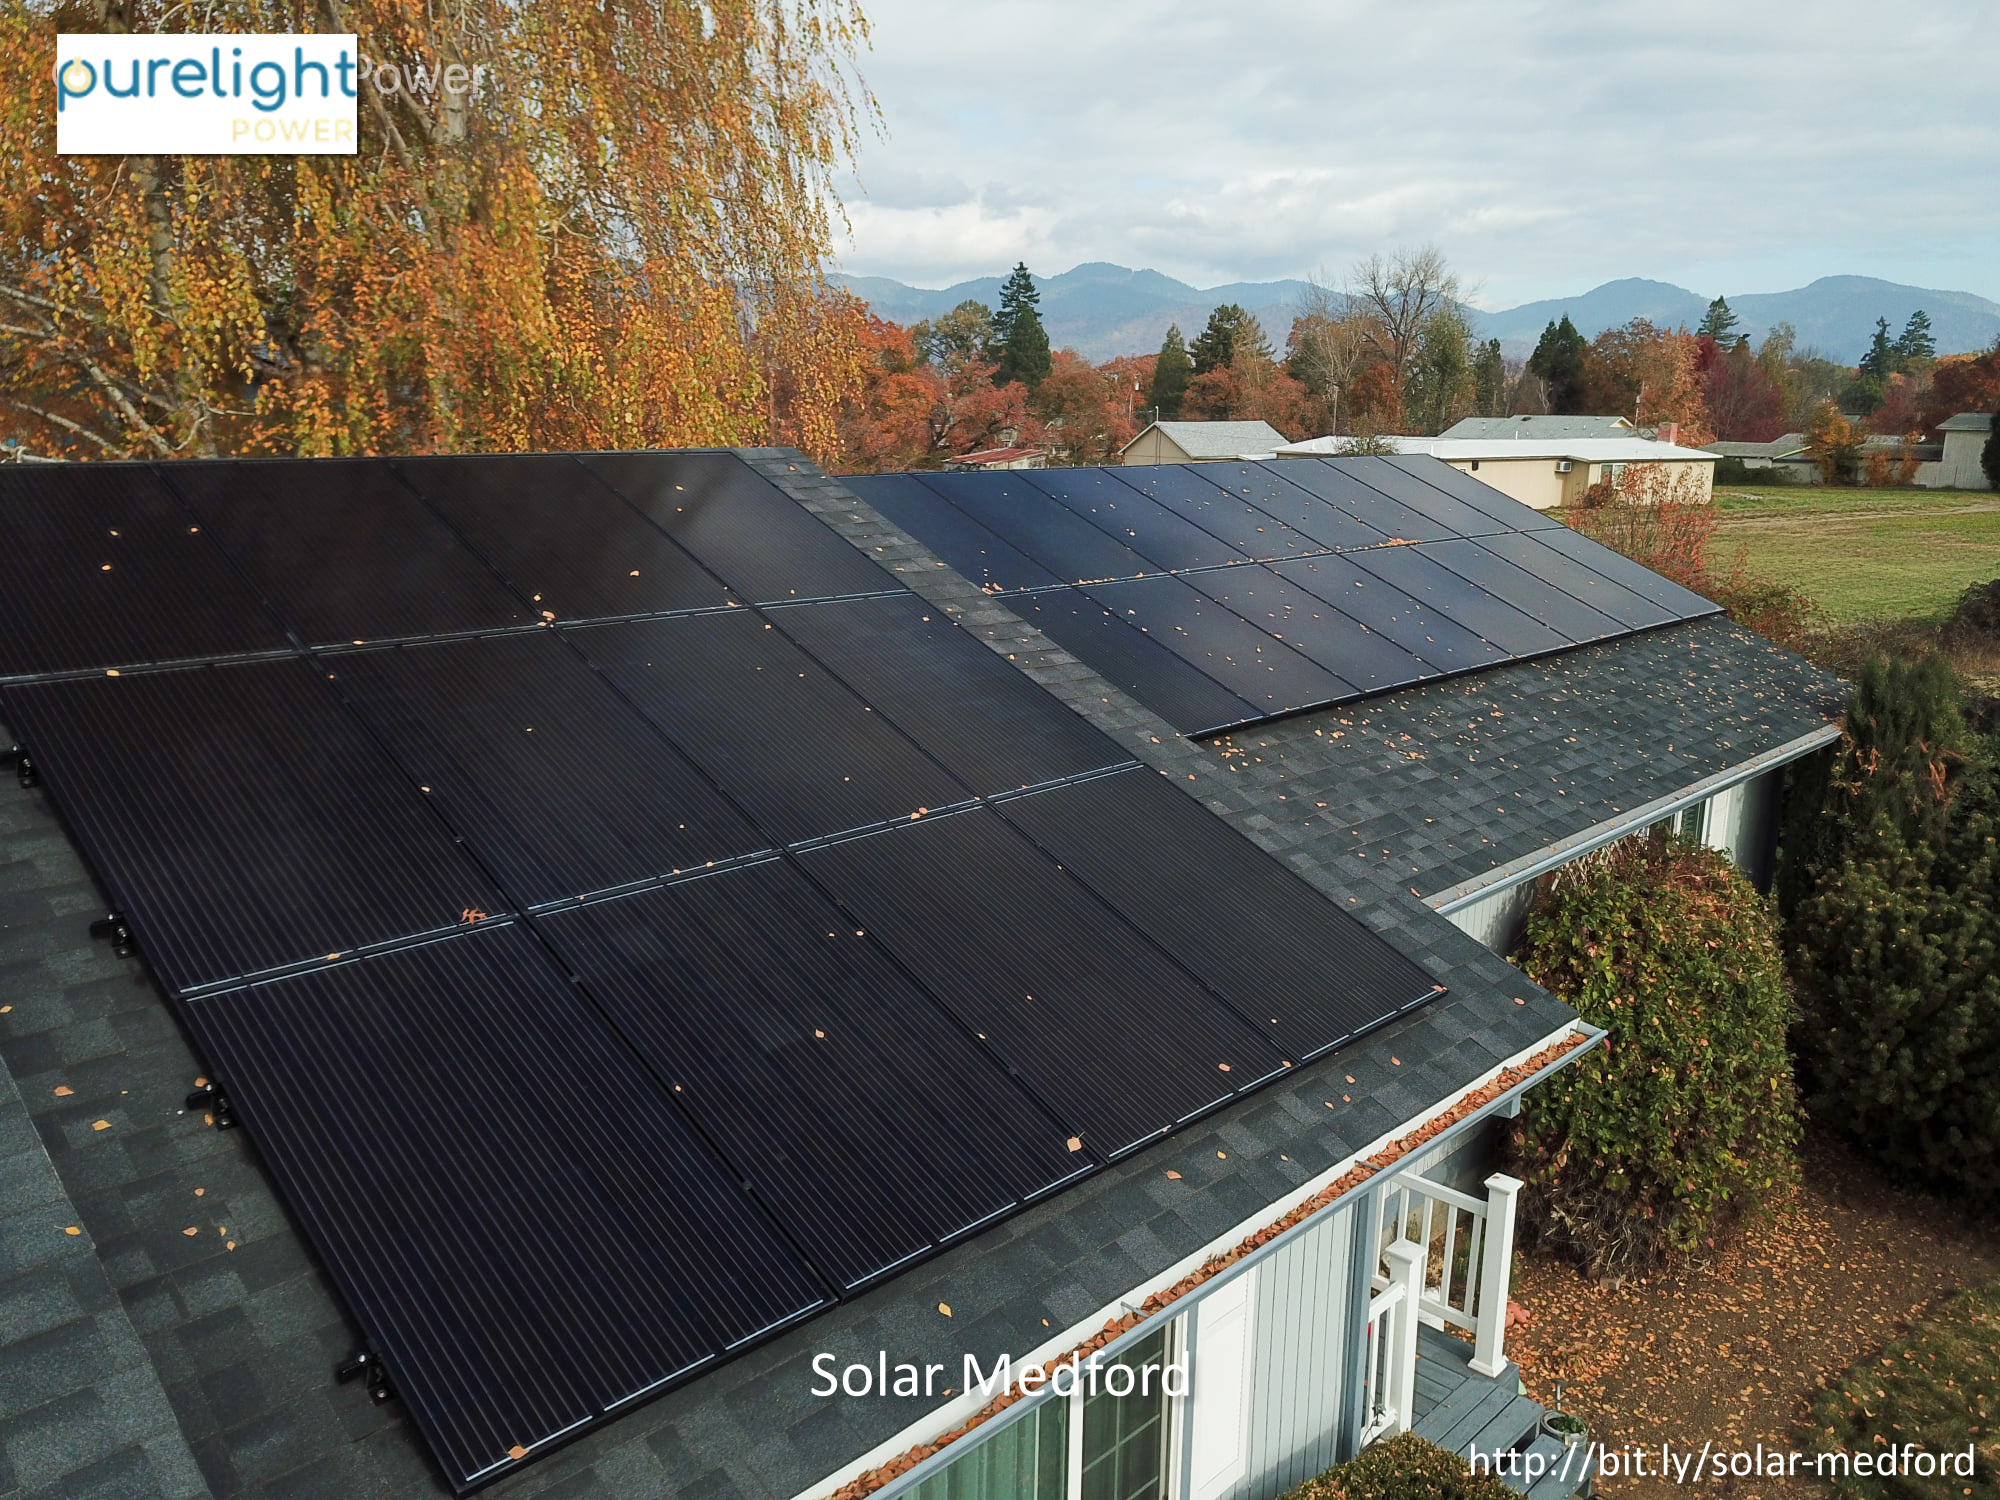 Purelight Power Mentions Reasons People Should Move to Use Solar Power